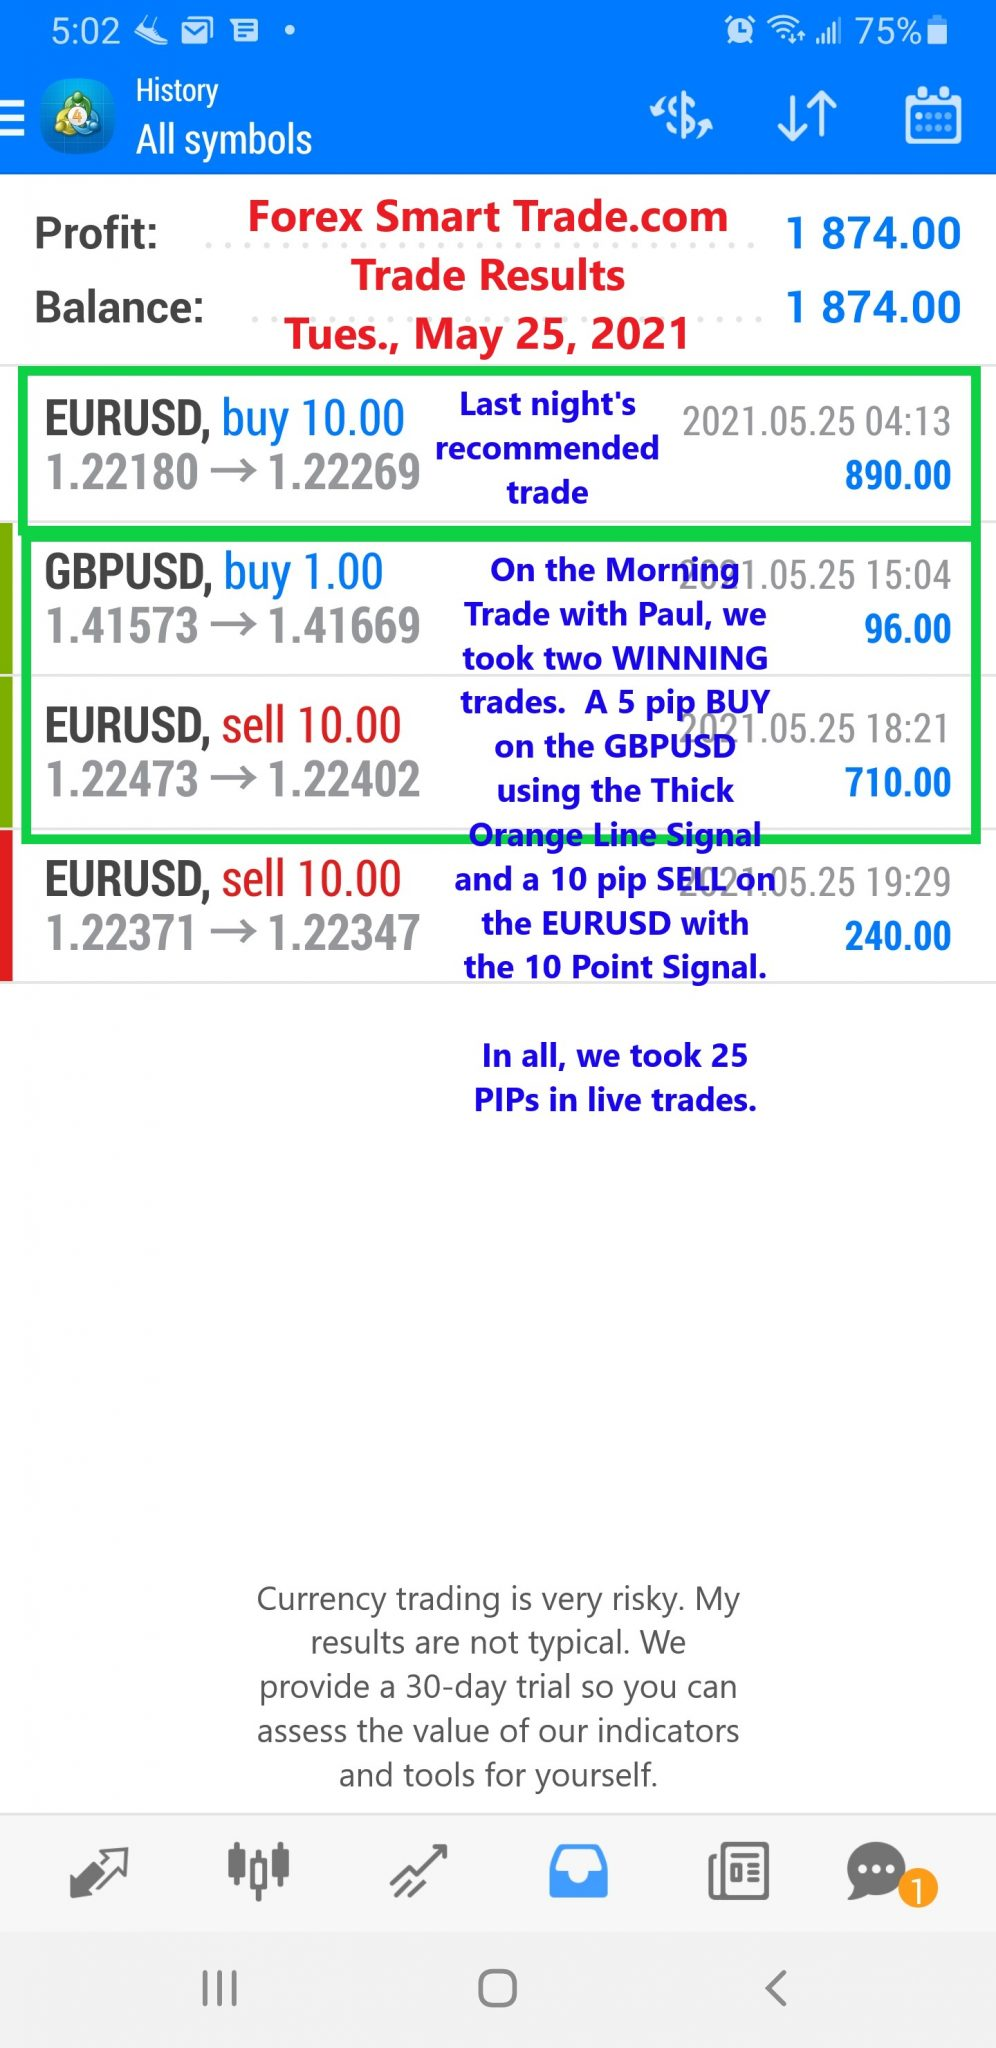 Trade Results Tuesday, May 25, 2021 - Forex Smart Trade